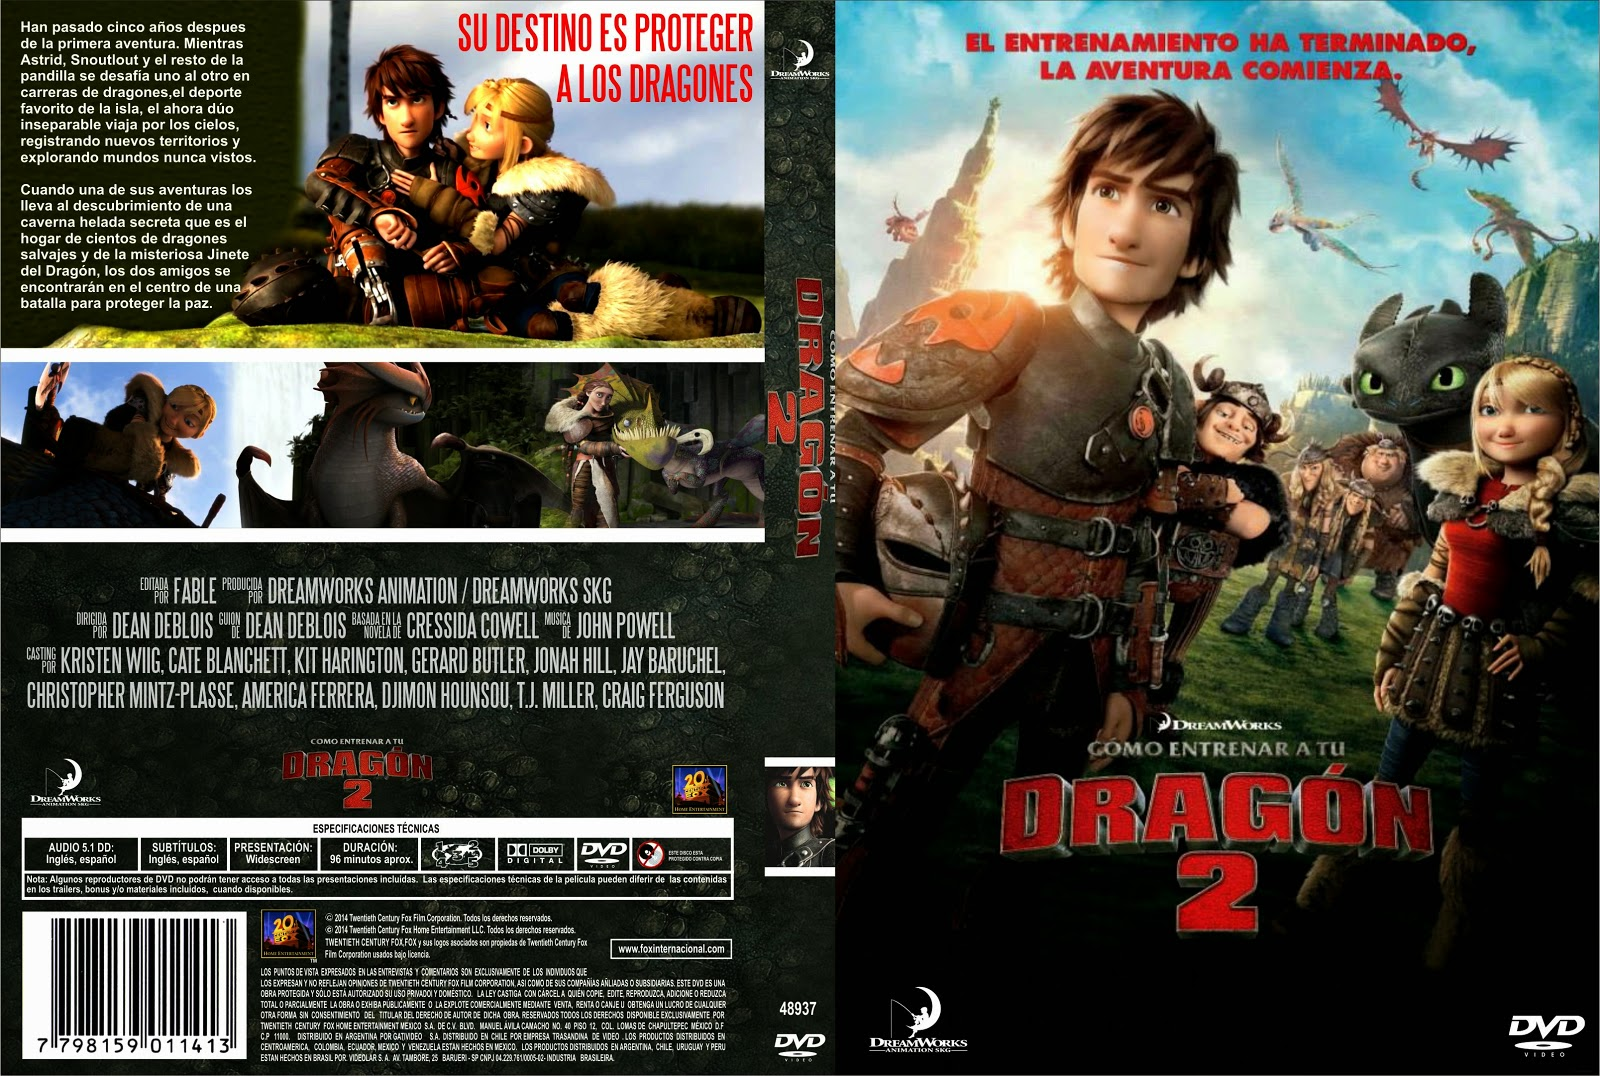 PB | DVD Cover / Caratula FREE: HOW TO TRAIN YOUR DRAGON 2 ...